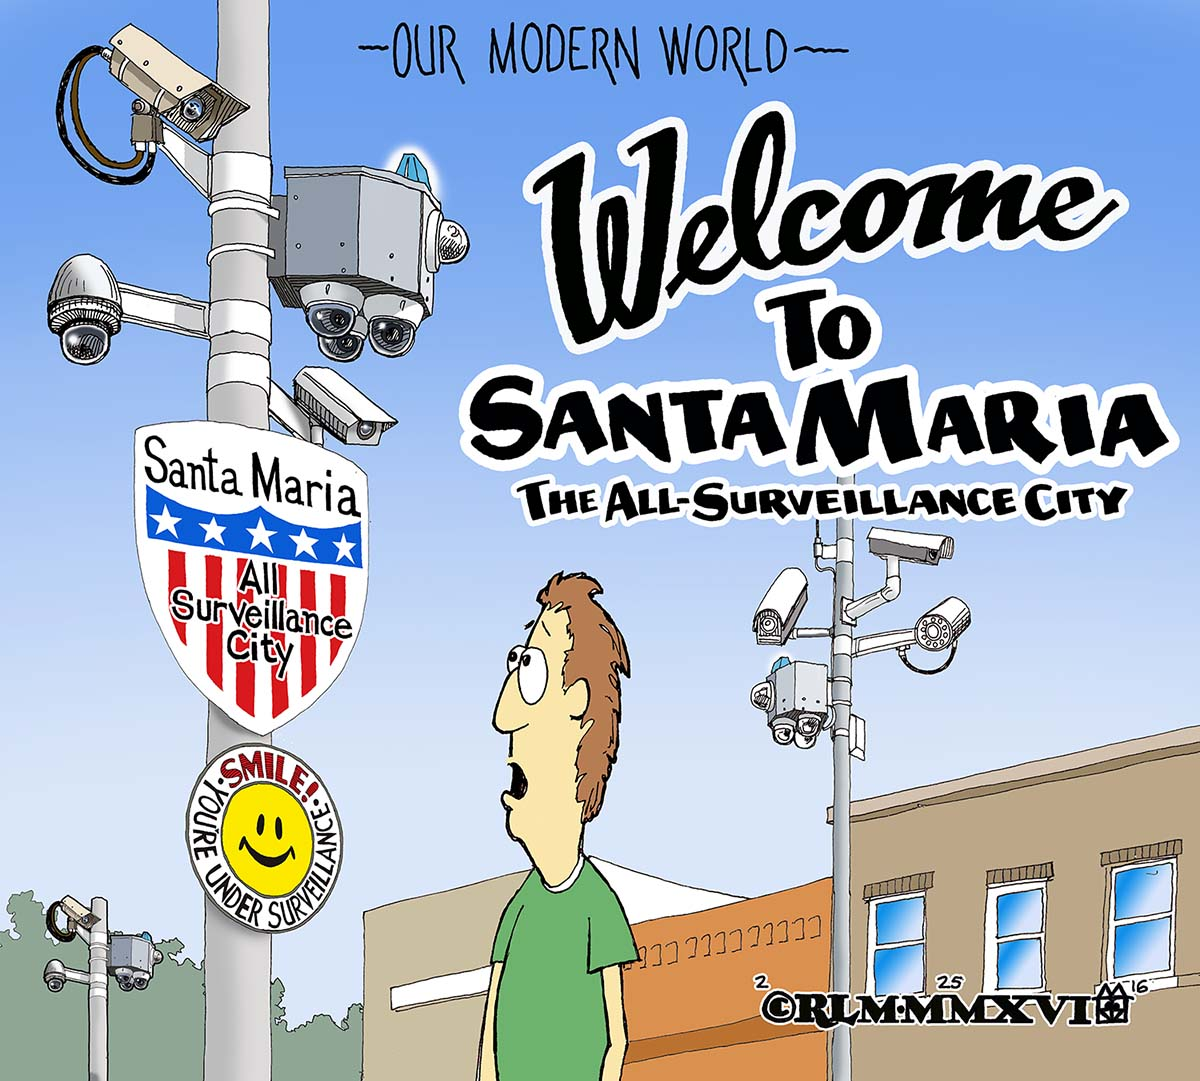 CITY OF SURVEILLANCE